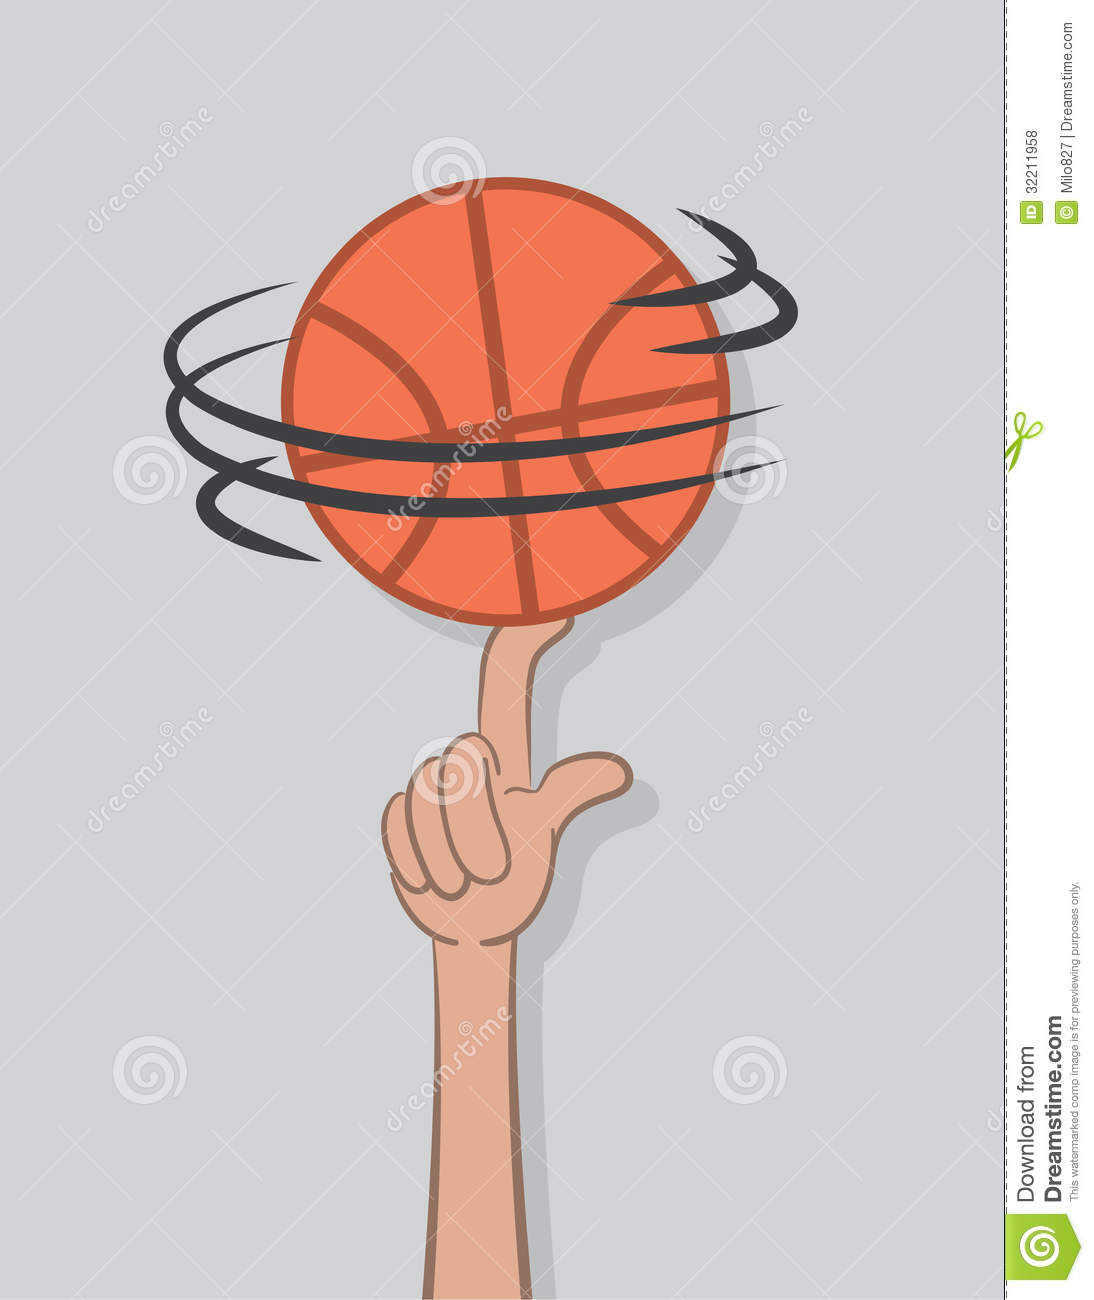 Spinning basketball clipart.